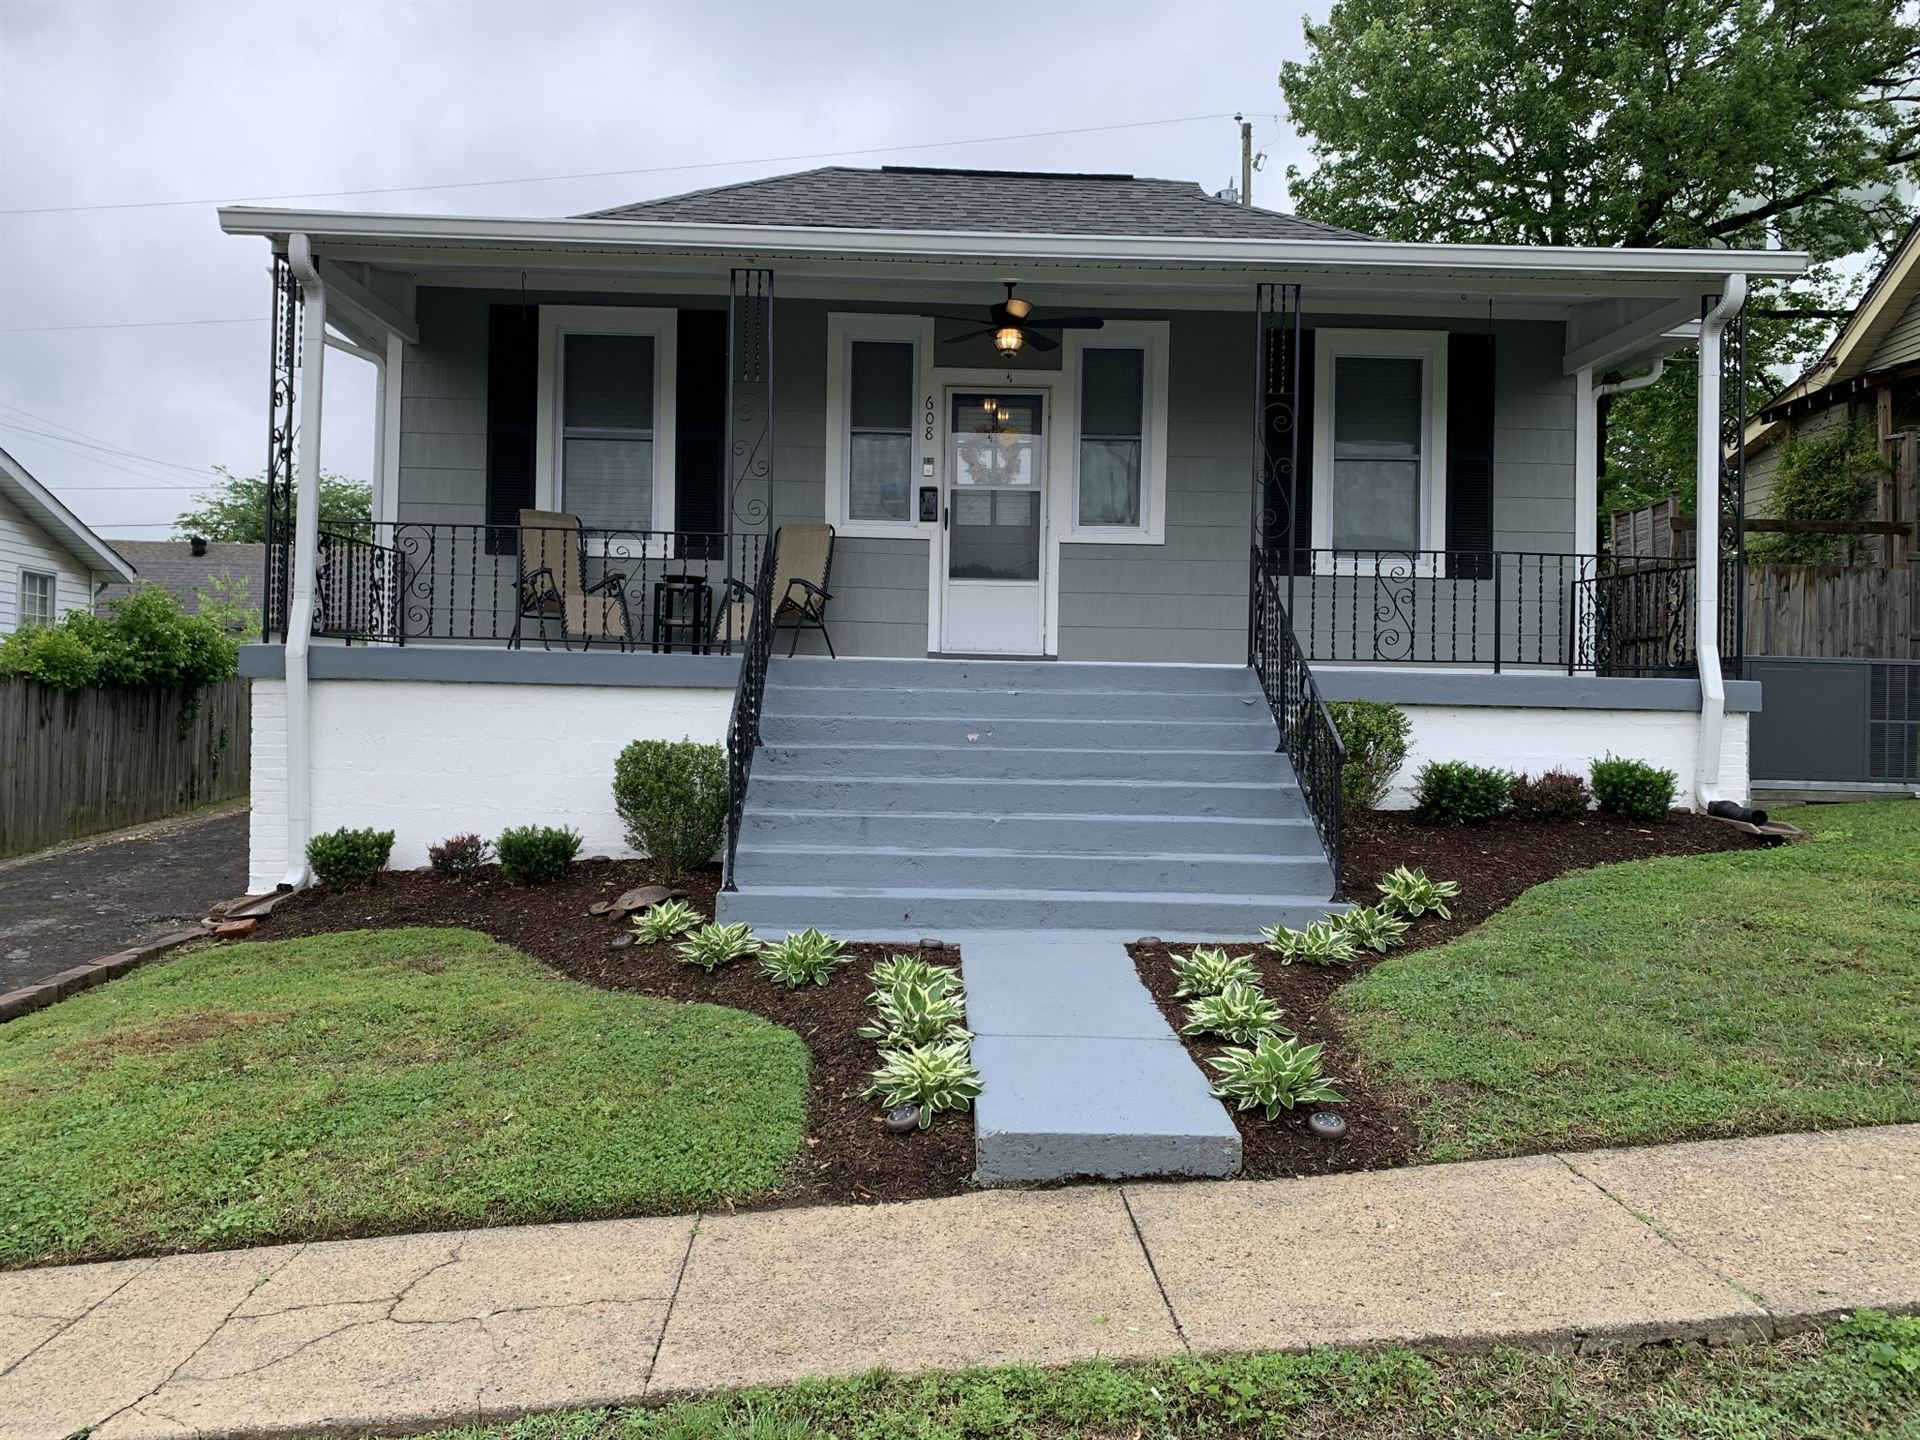 608 Lawrence St, Old Hickory, TN 37138 - MLS#: 2250938